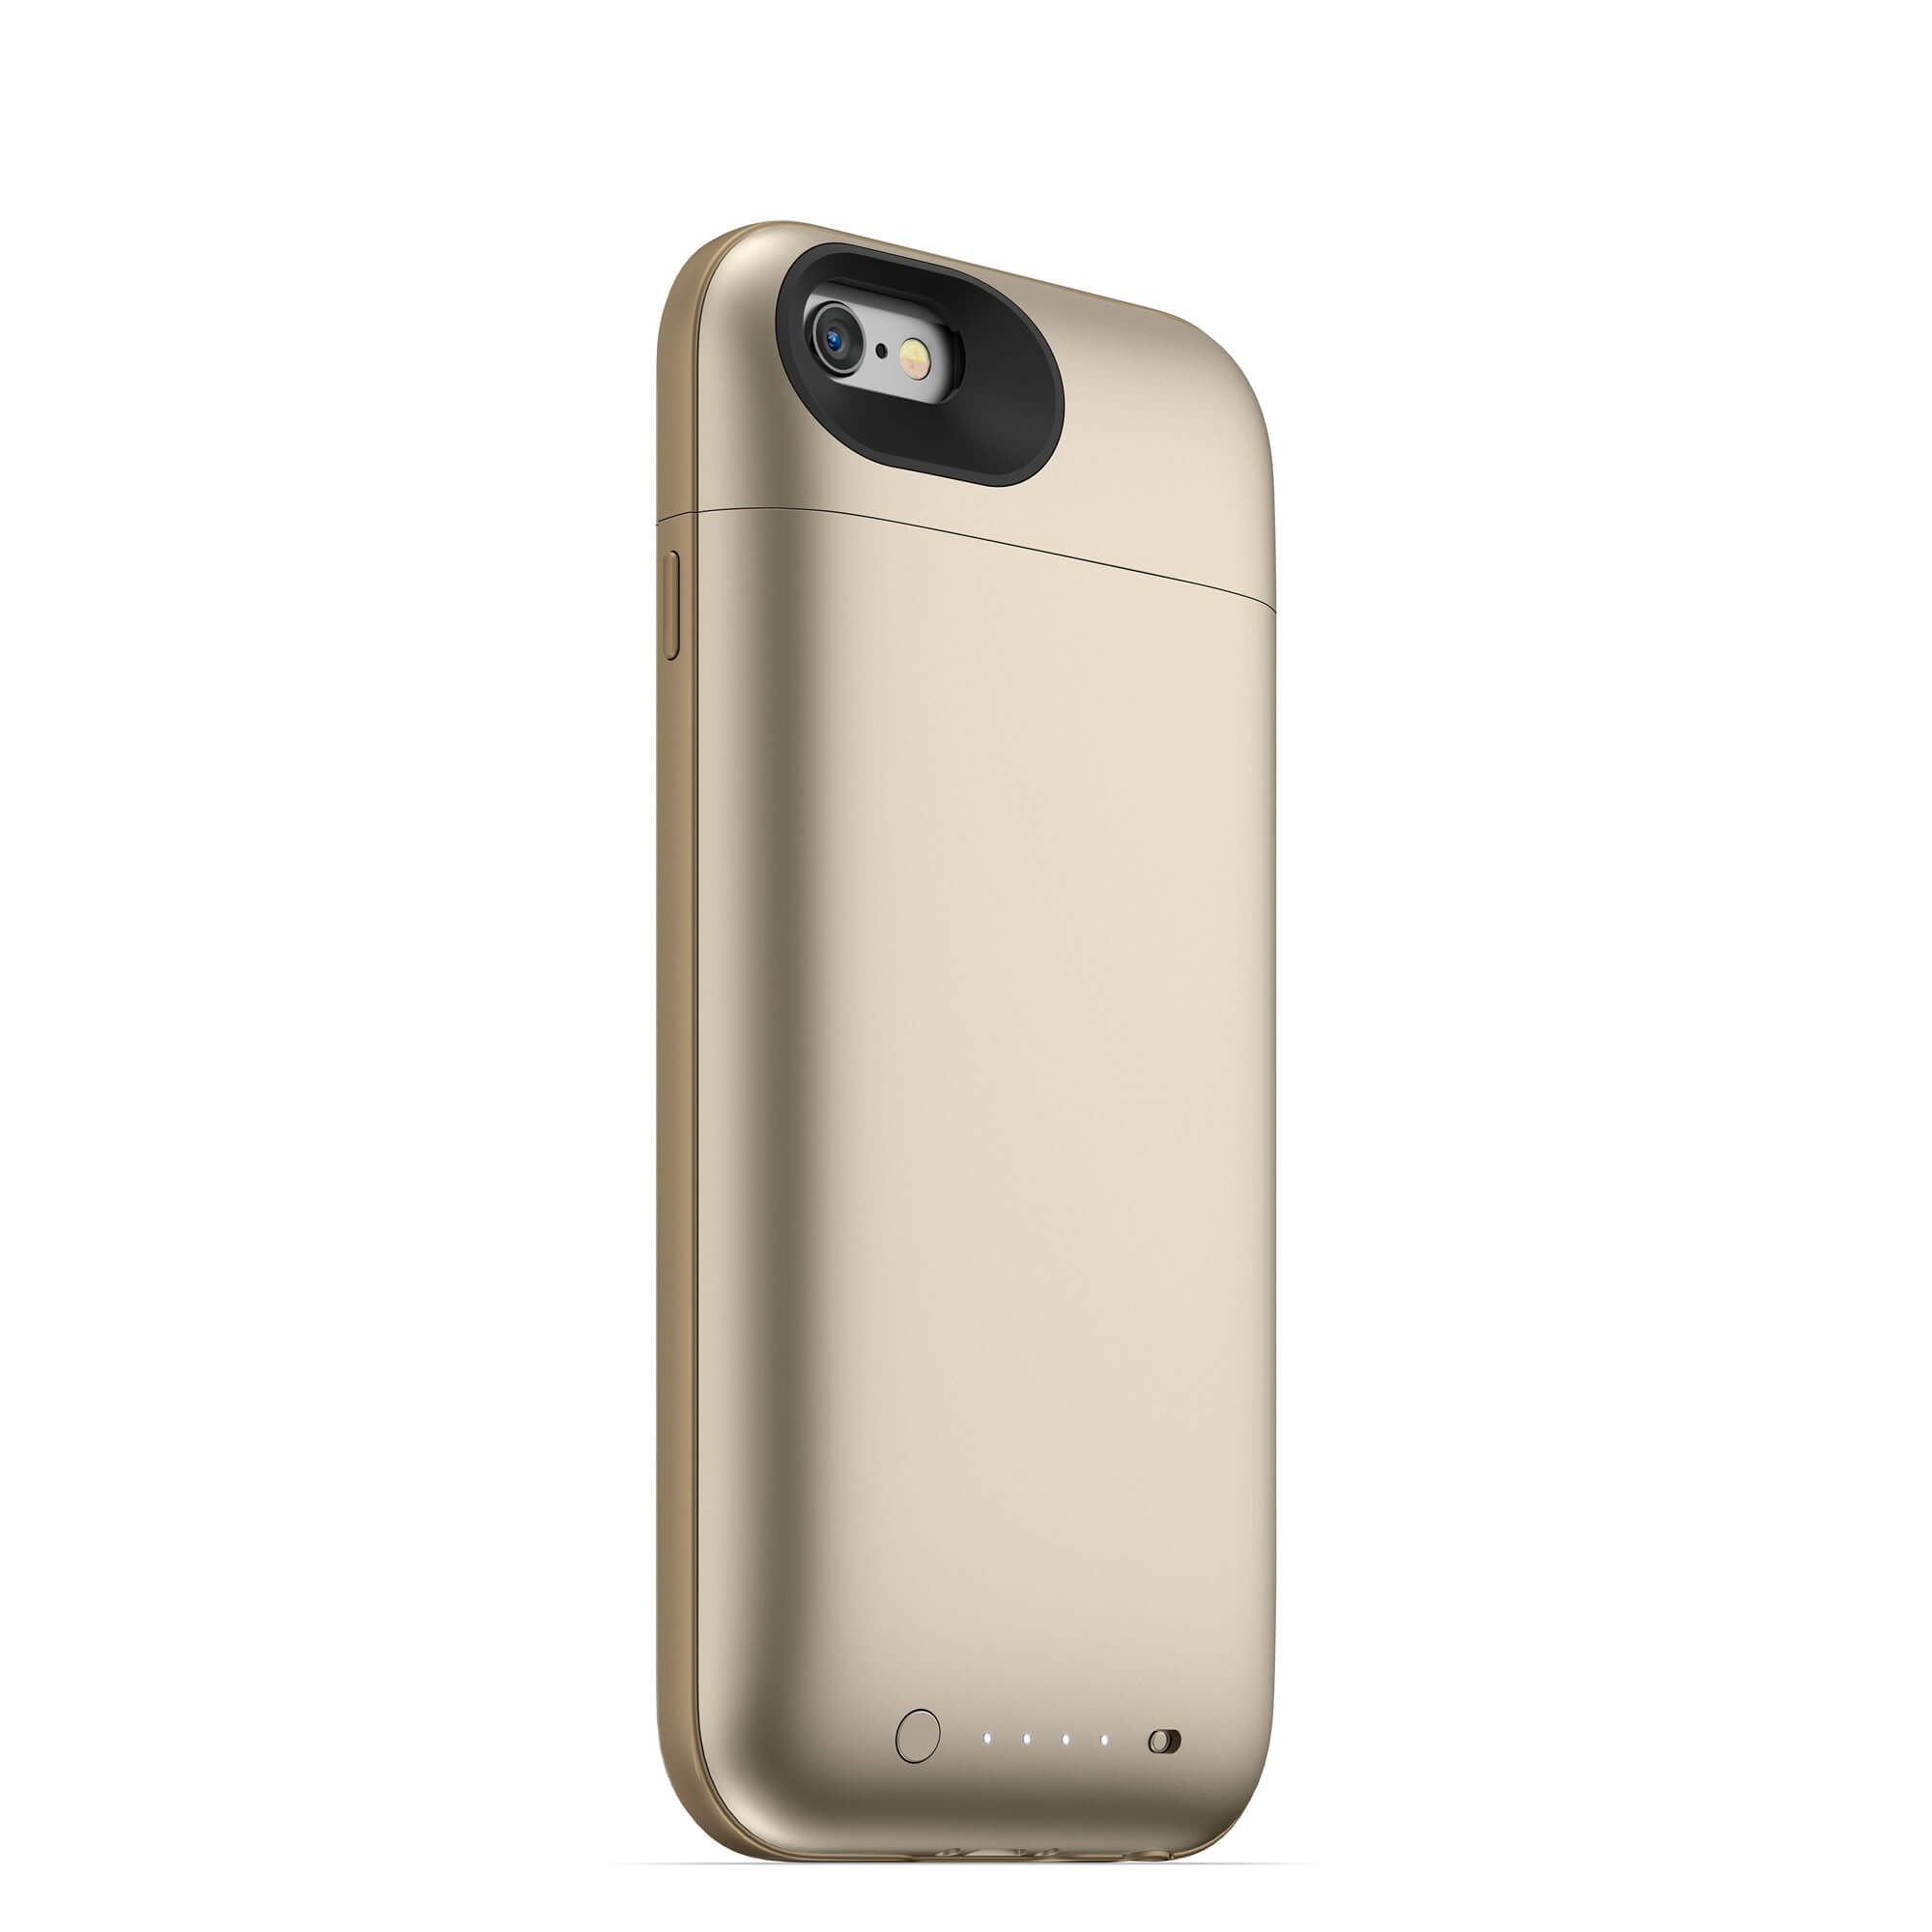 Mophie Juice Pack 2600 Mah External Battery And Case For Iphone 6 Plus Iphone 6s Plus Gold Gold Price Dice Bg Slim, protective juice pack battery cases from mophie help you maintain a full charge so you always have power when and. mophie juice pack udaroustojchiv kejs s vgradena bateriya 2600 mah za iphone 6 plus iphone 6s plus zlatist